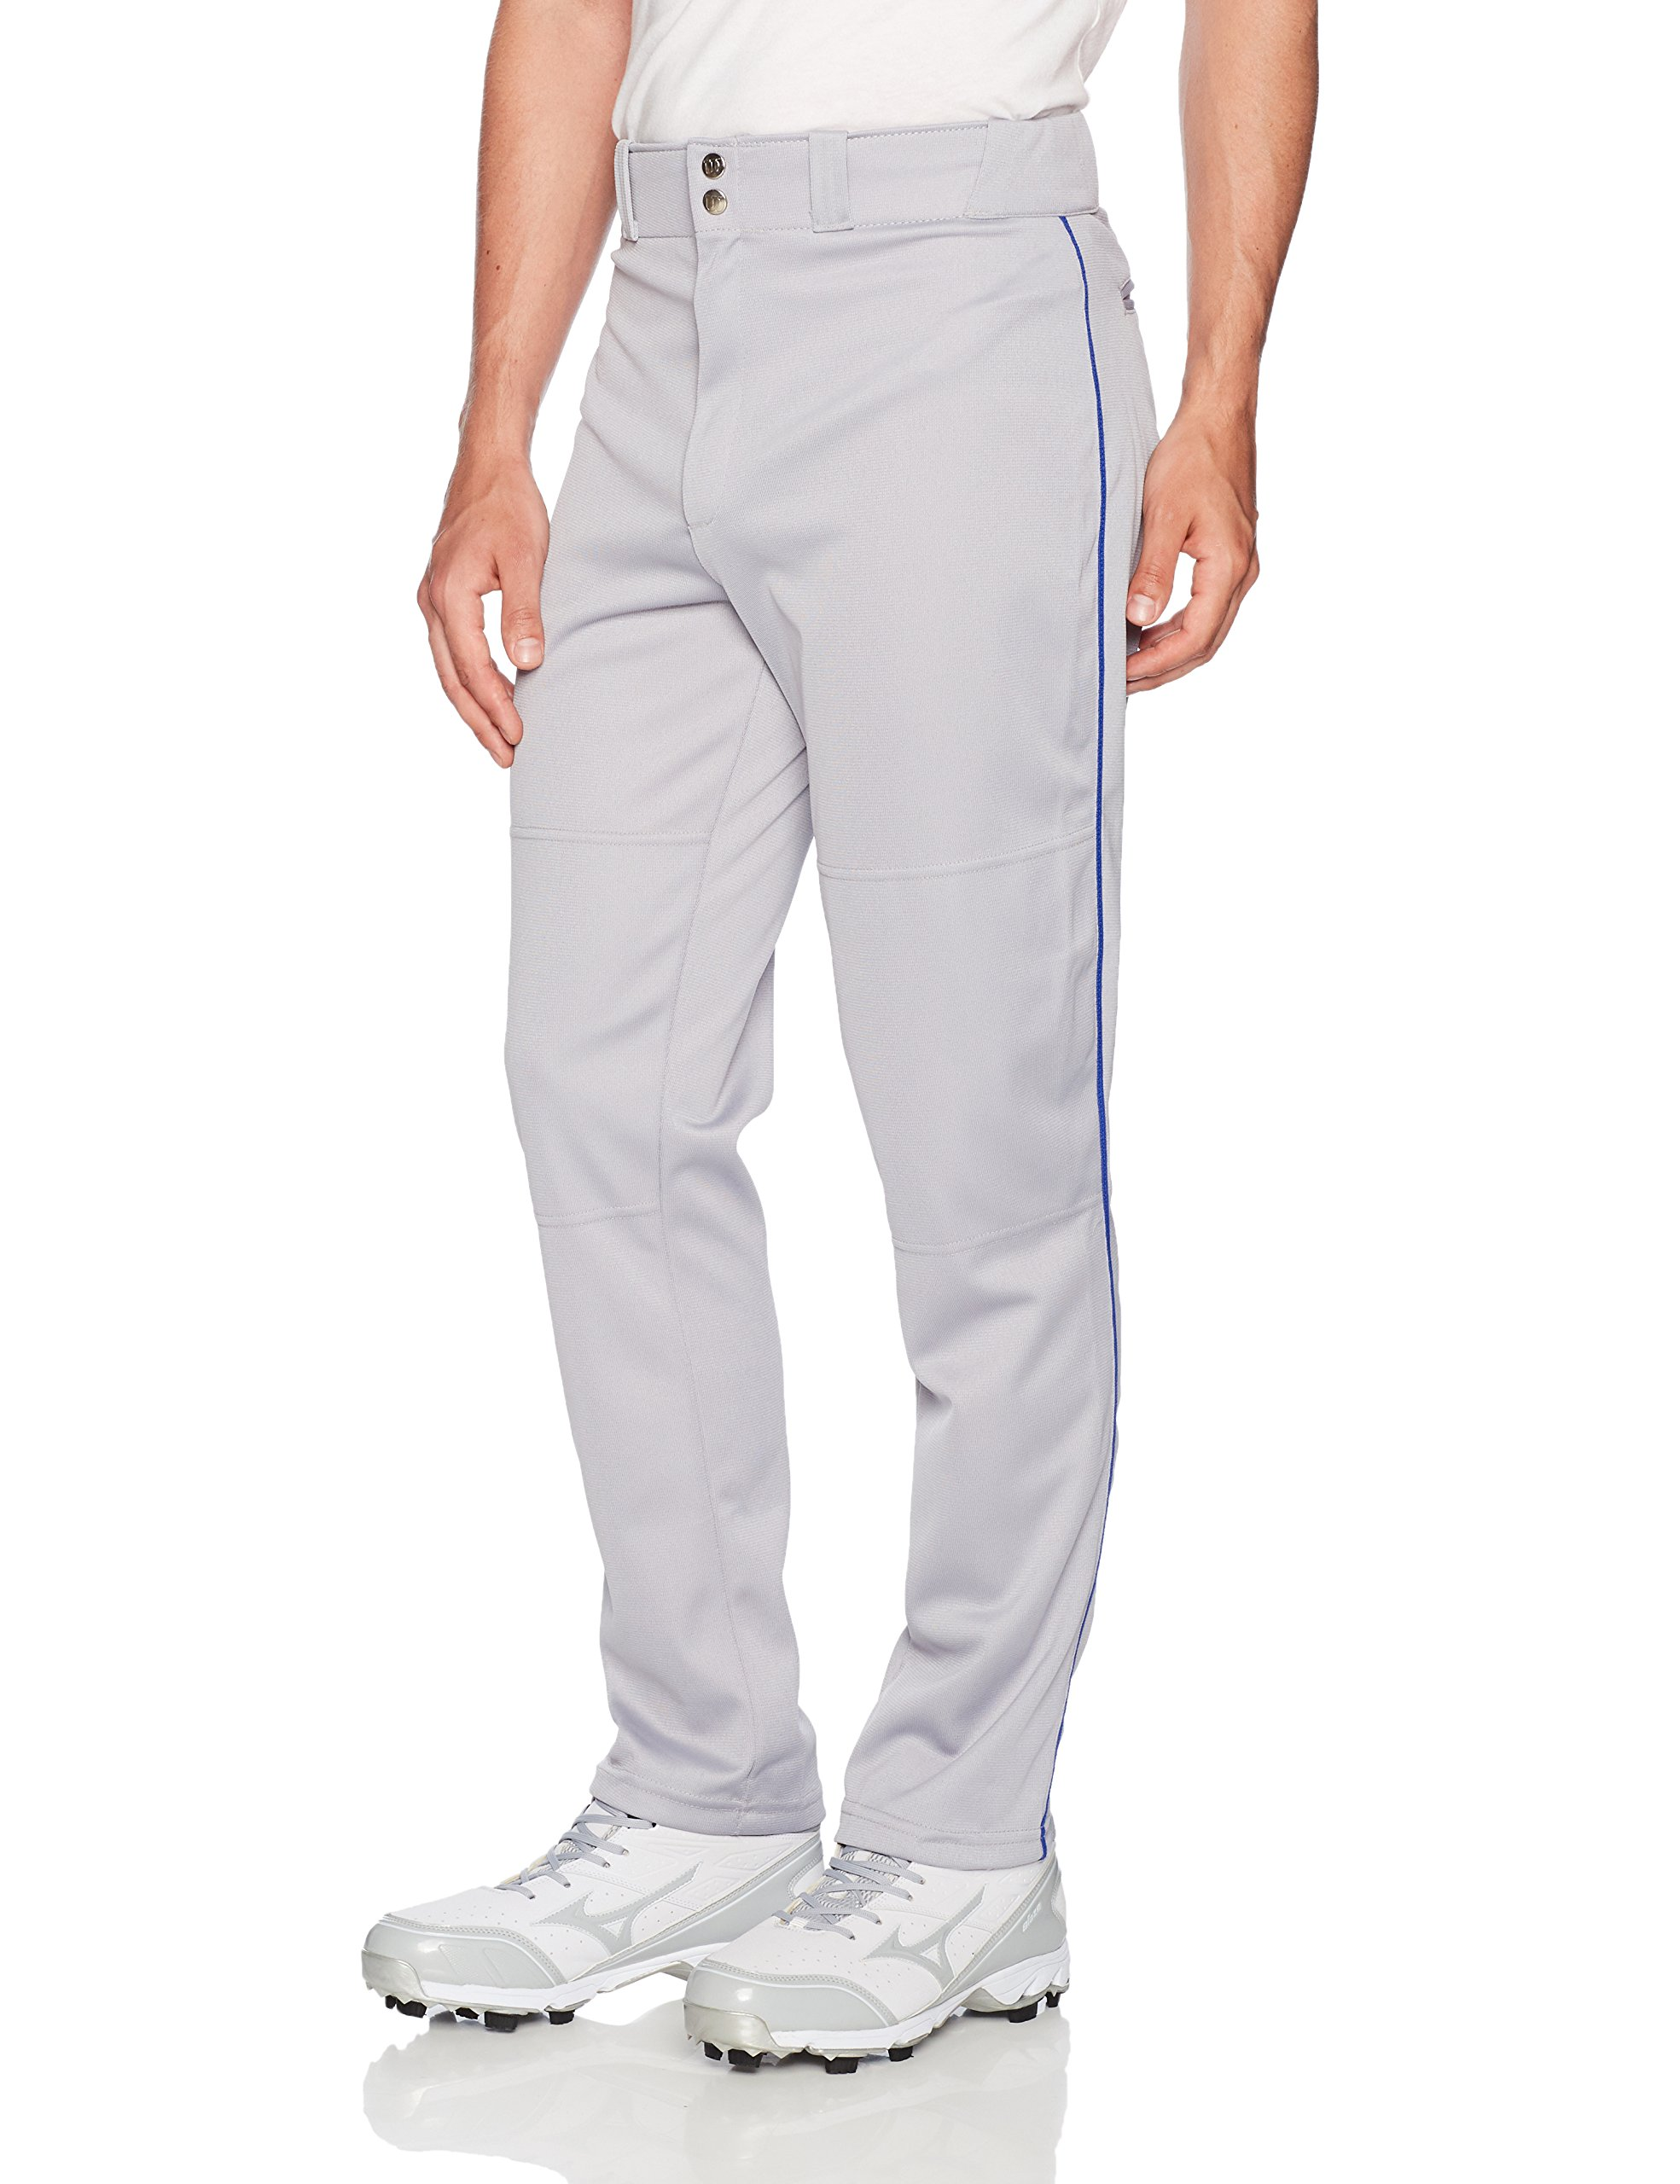 Wilson Men's Classic Relaxed Fit Piped Baseball Pant, Grey/Royal, Large by Wilson